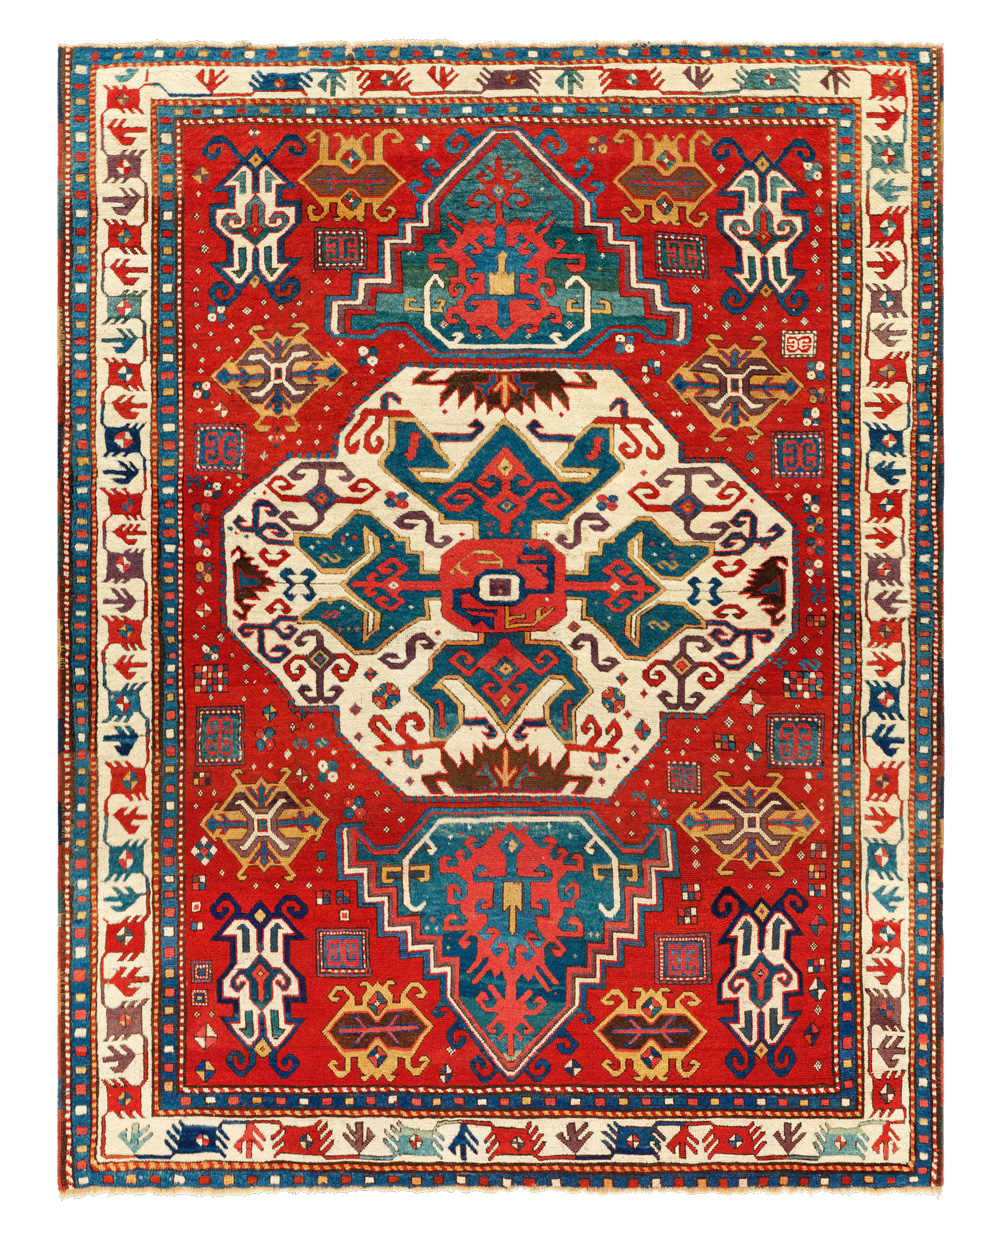 "'Lori Pambak' Kazak rug, western Transcaucasus, first half 19th century. Warp: Z3S beige wool, warps on one level; weft: two singles, dark red wool, one to three shoots, mostly two; knots: symmetric, V10 x H8 = 80/in2 (c a . 1, 240/dm2), pile height about 10mm; sides: two pairs of reinforced warps interlaced with 5-13 cm segments of wool in all the pile colours; ends: warp finishes missing, outer 'barber's pole' guard borders missing; colours: 9: red, rose, aubergine, butterscotch yellow, green, medium blue, dark blue, ivory, dark brown (partly corroded); 1.73 x 2.18 m (5' 8"" x 7' 2""). Author's collection, published Tschebull, HALI 1/3, 1978, fig.22; Franses et al., Stars of the Caucasus, 2017, fig.10.23; Qarajeh to Quba, 2019, pl.28"